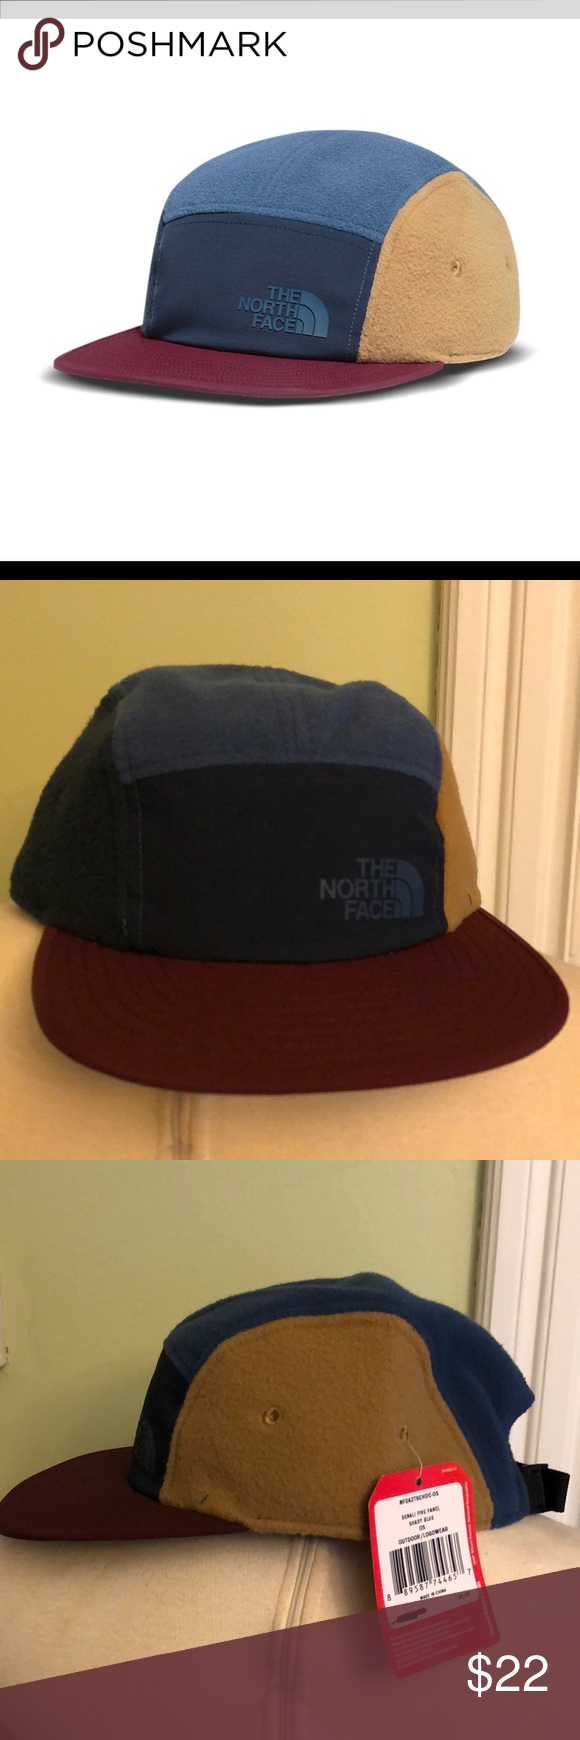 3f77aec535a The North Face Denali Five Panel Hiking Hat Cap New With Tags The North  Face Denali Five Panel Fleece Hat Color- Shady Blue Adjustable The North  Face ...